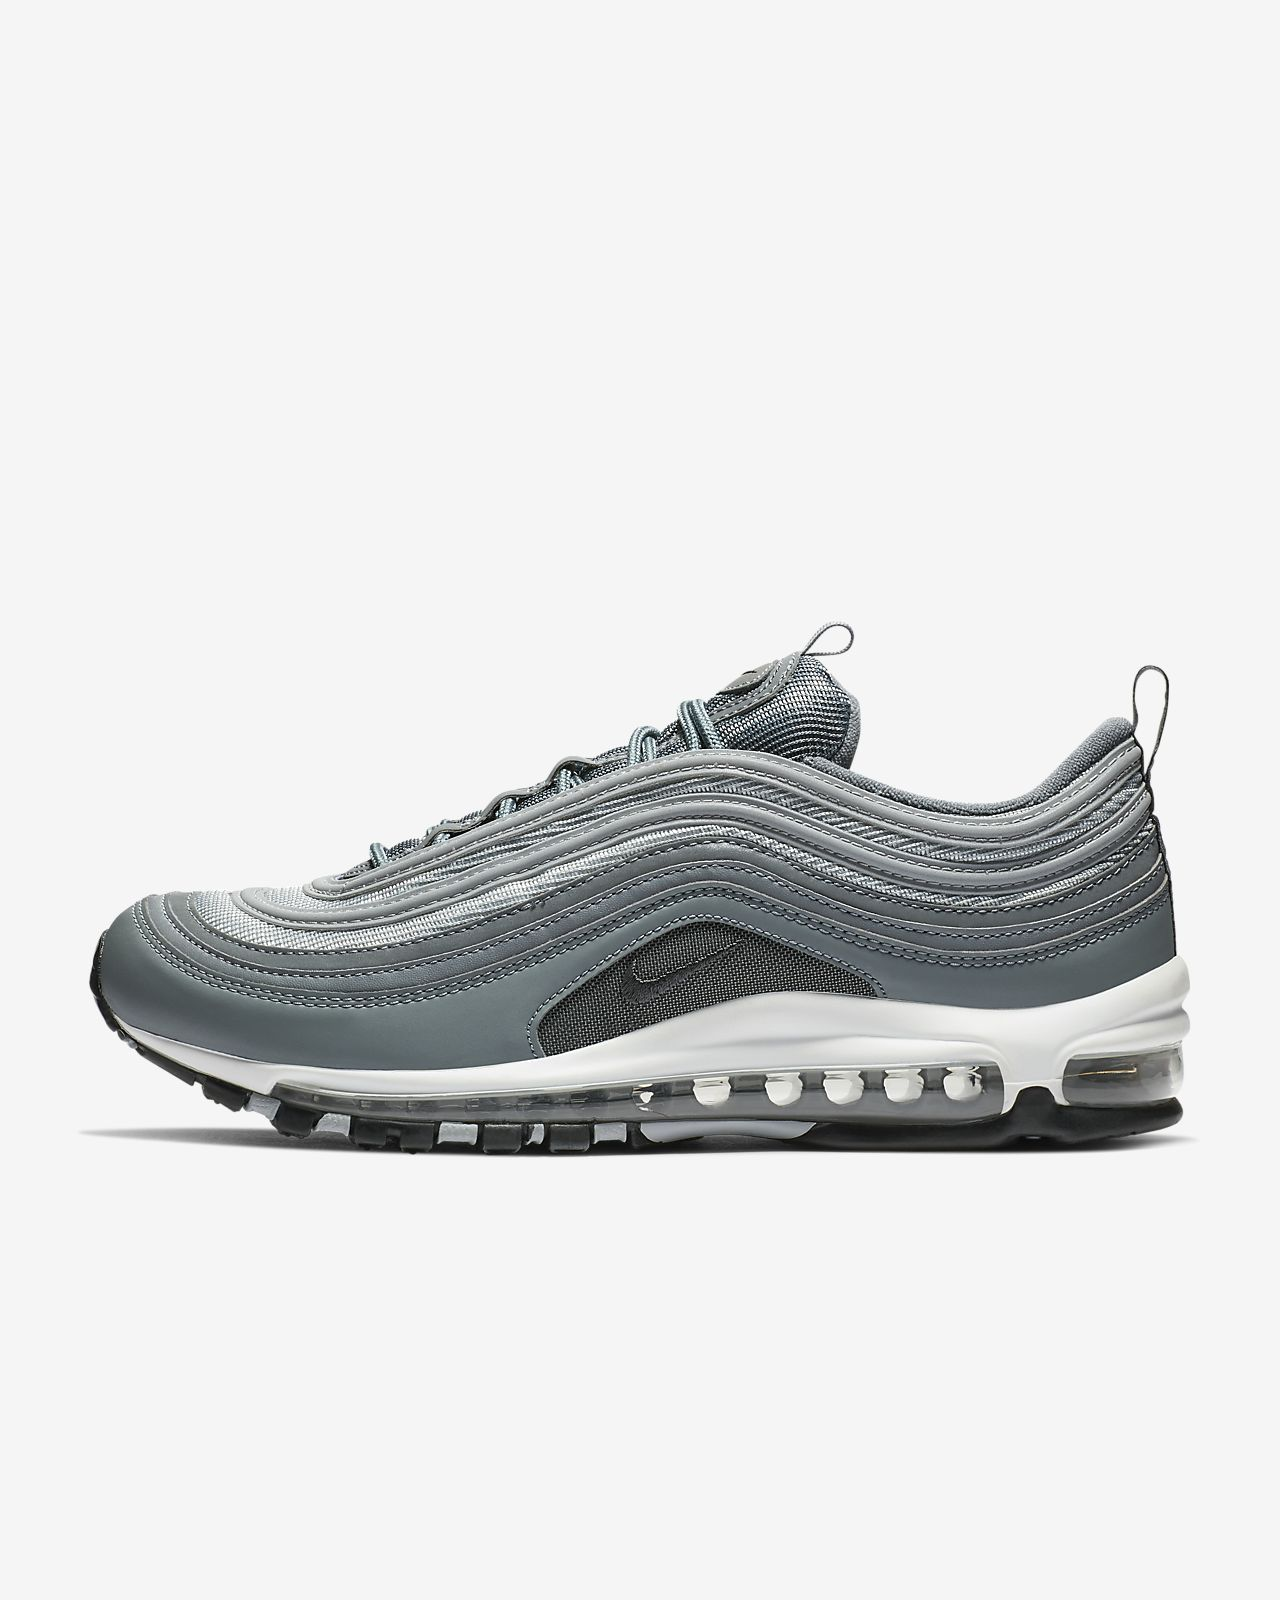 new products 5ca40 0d9b6 ... Nike Air Max 97 Essential Herrenschuh